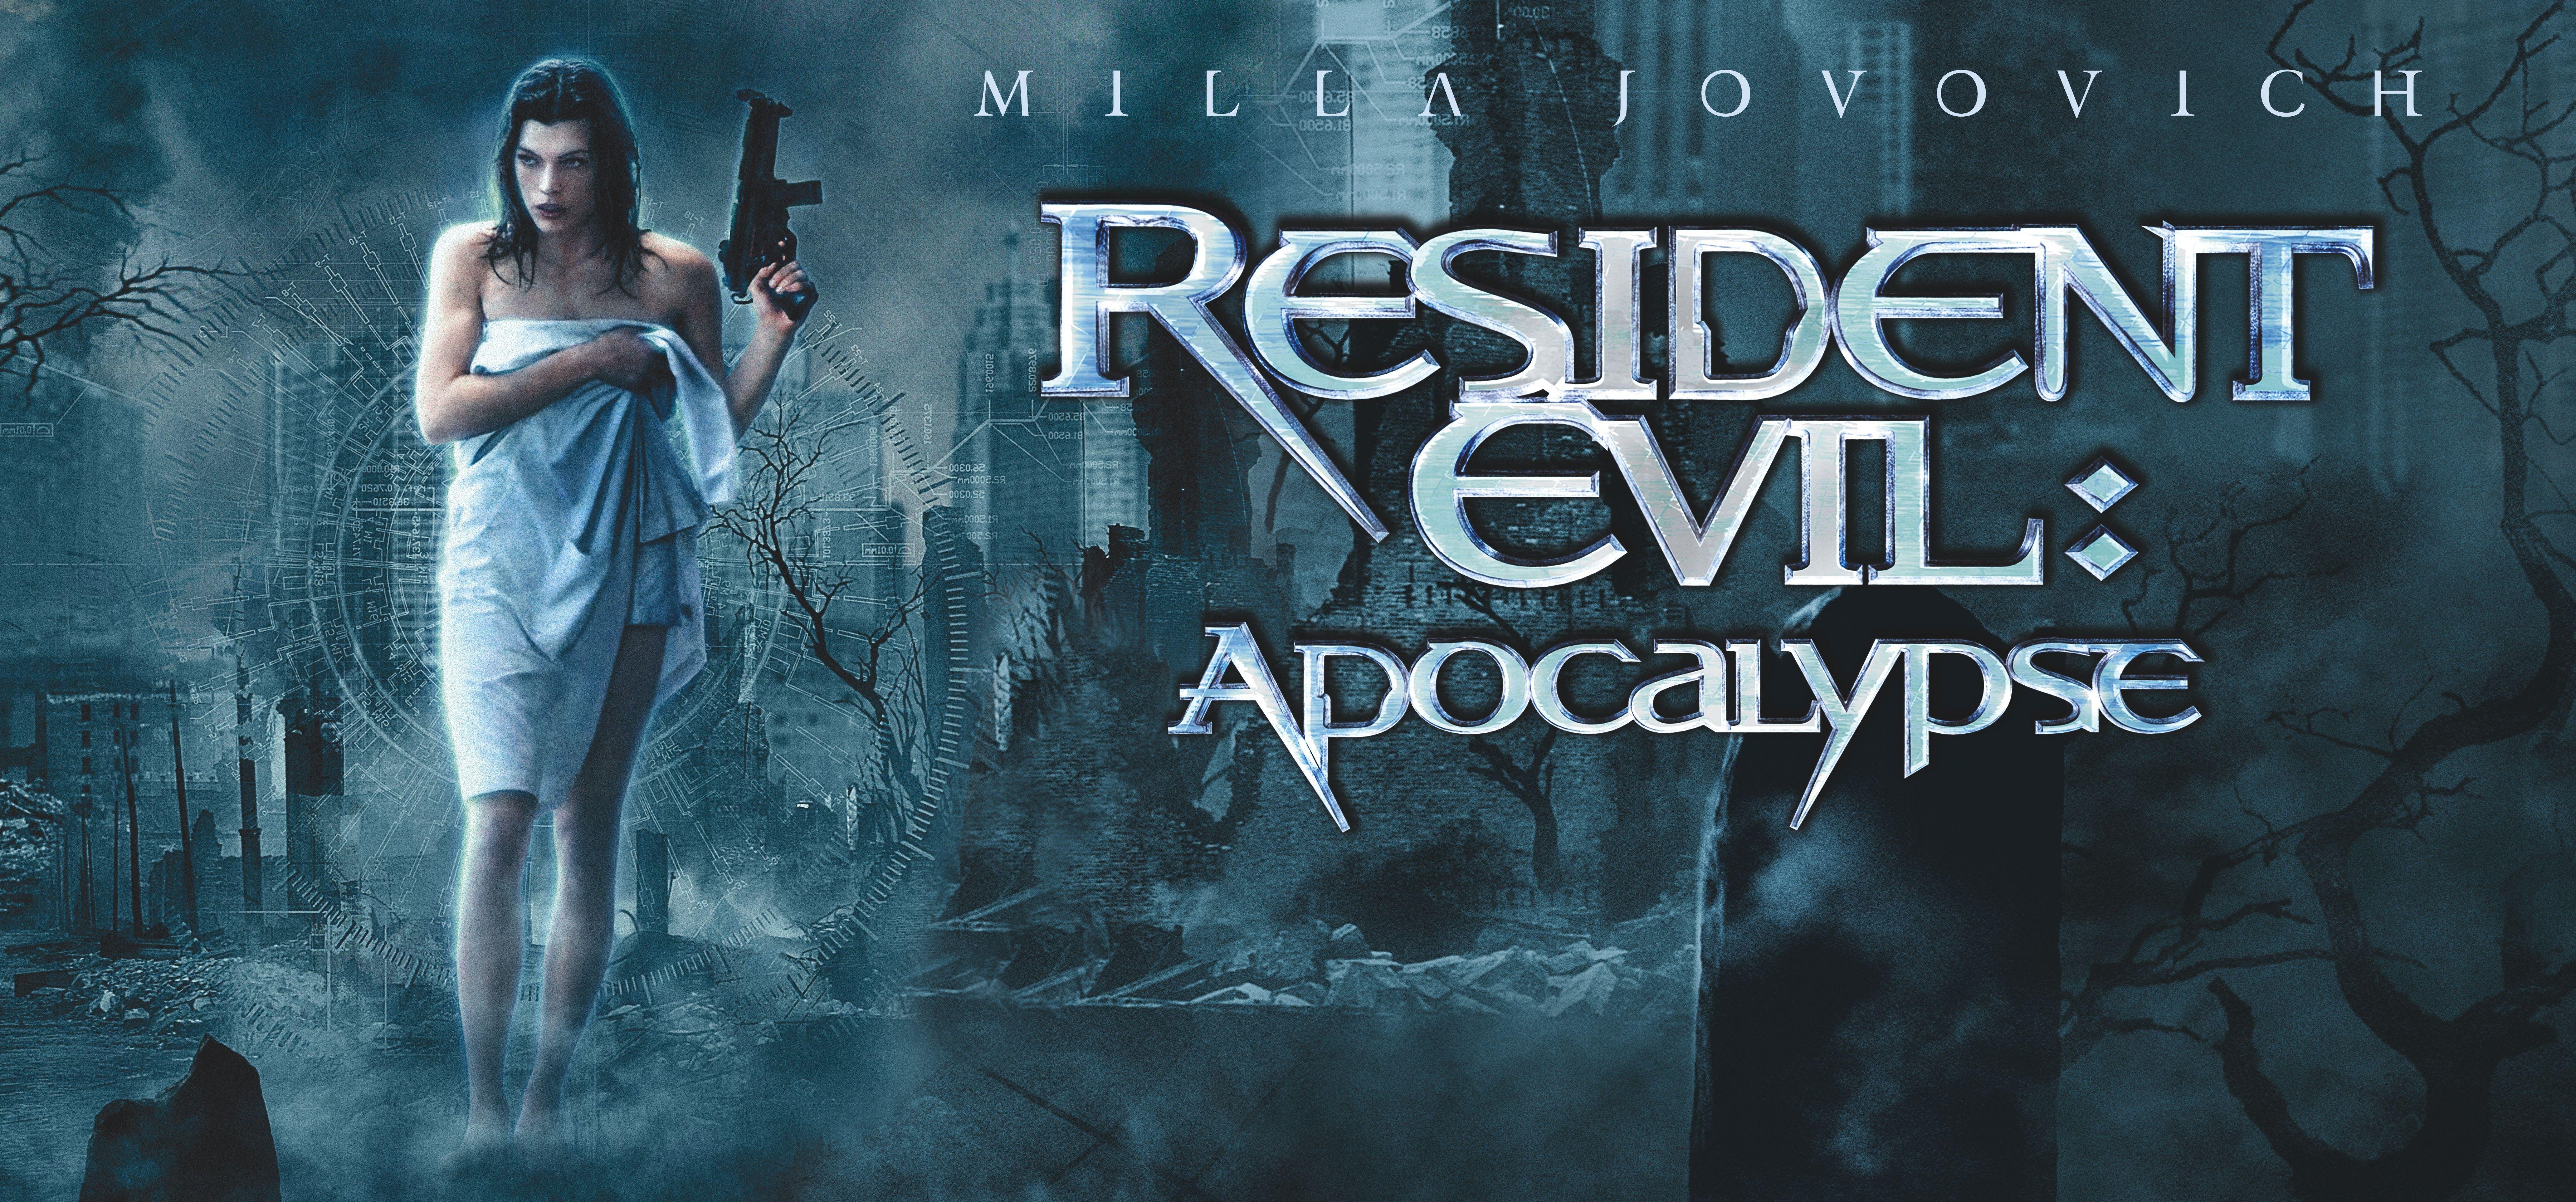 Resident Evil Apocalypse Wallpapers Wallpaper Cave